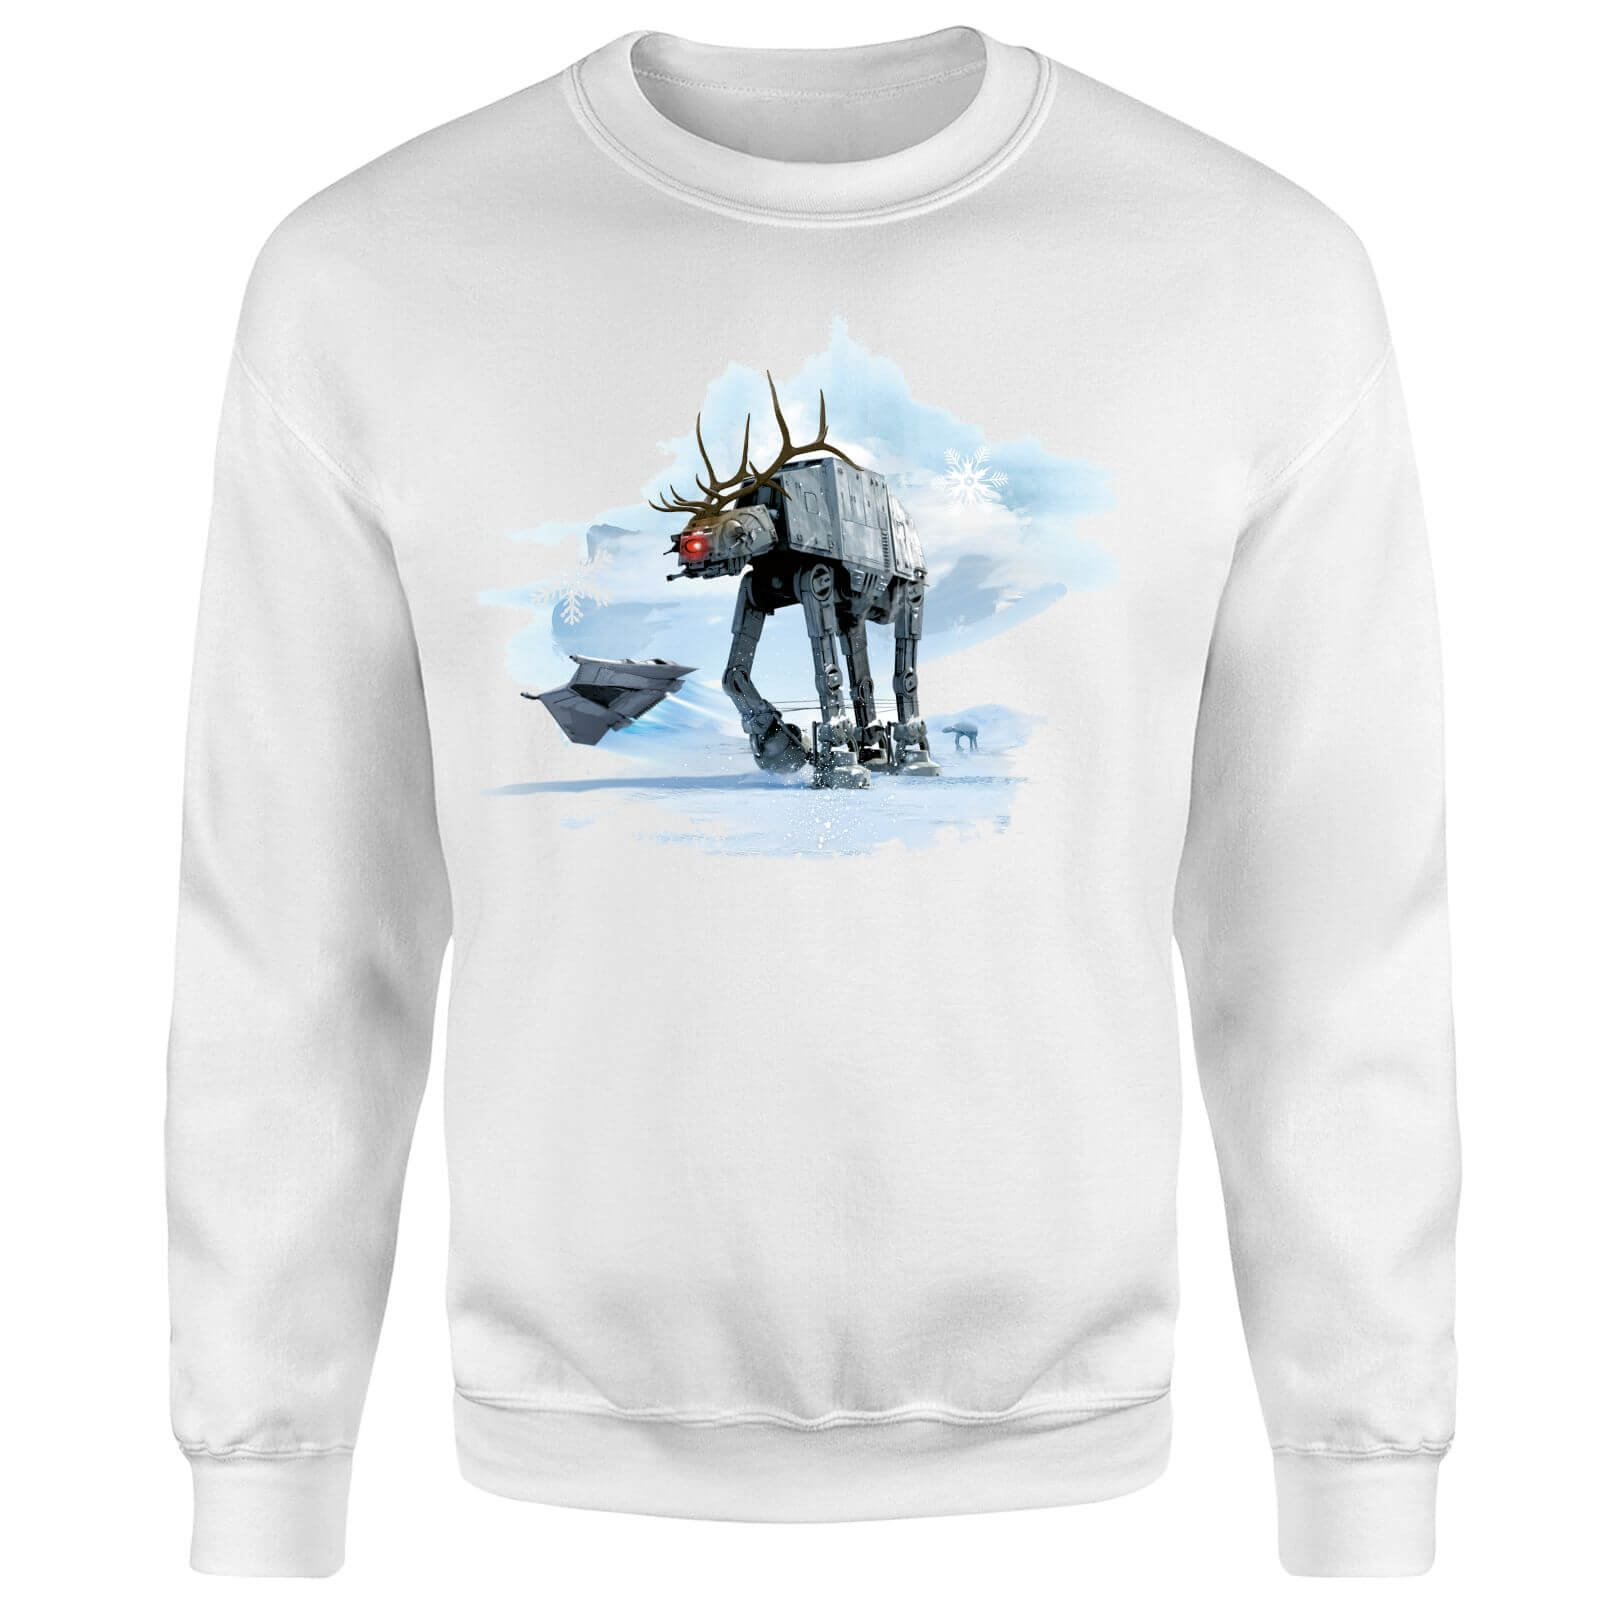 Star Wars AT-AT Christmas Reindeer White Christmas Sweatshirt